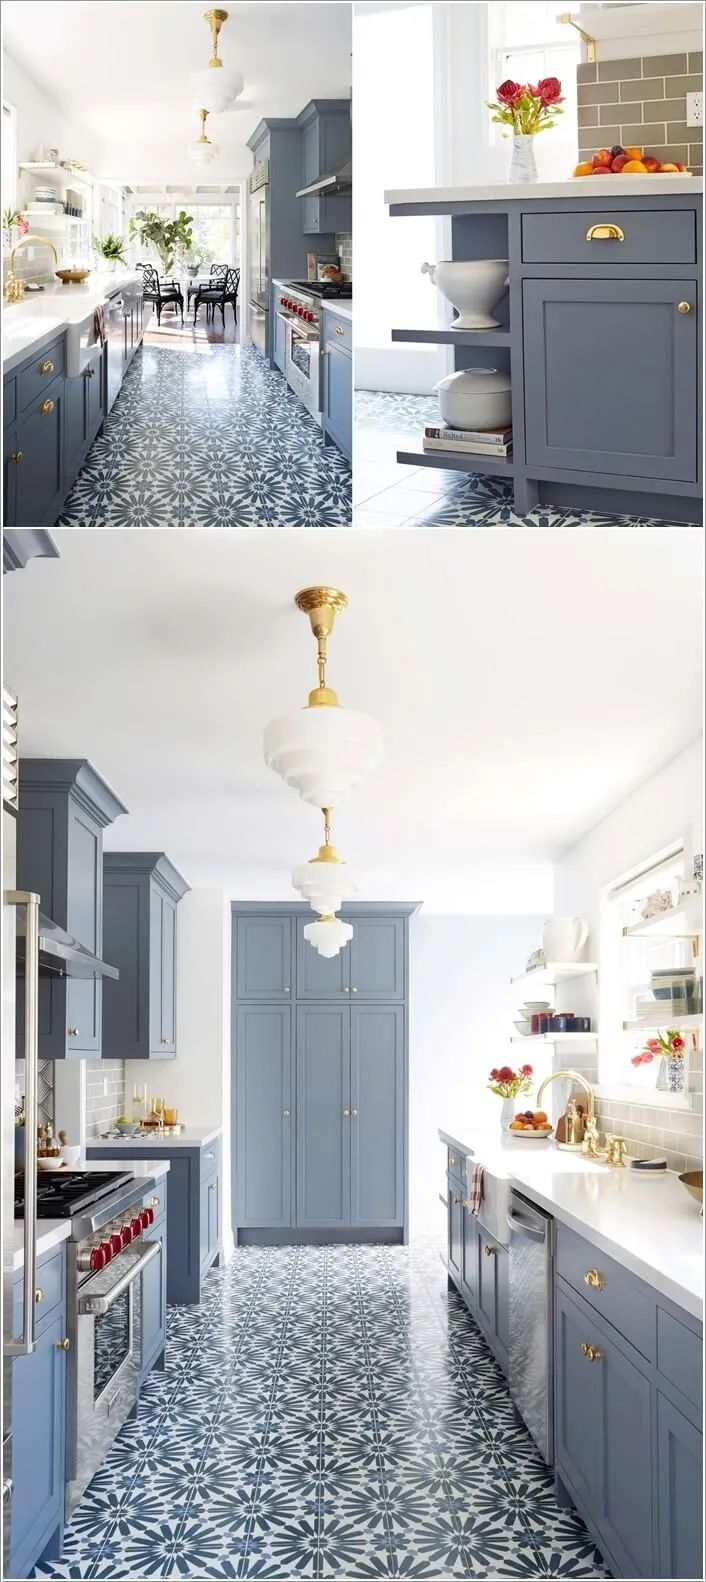 Kitchen Cabinets: Design For Narrow Kitchen. Desktop Design For Narrow Kitchen Smartphone High Quality Interesting Ideas To Decorate Long And Kitchens